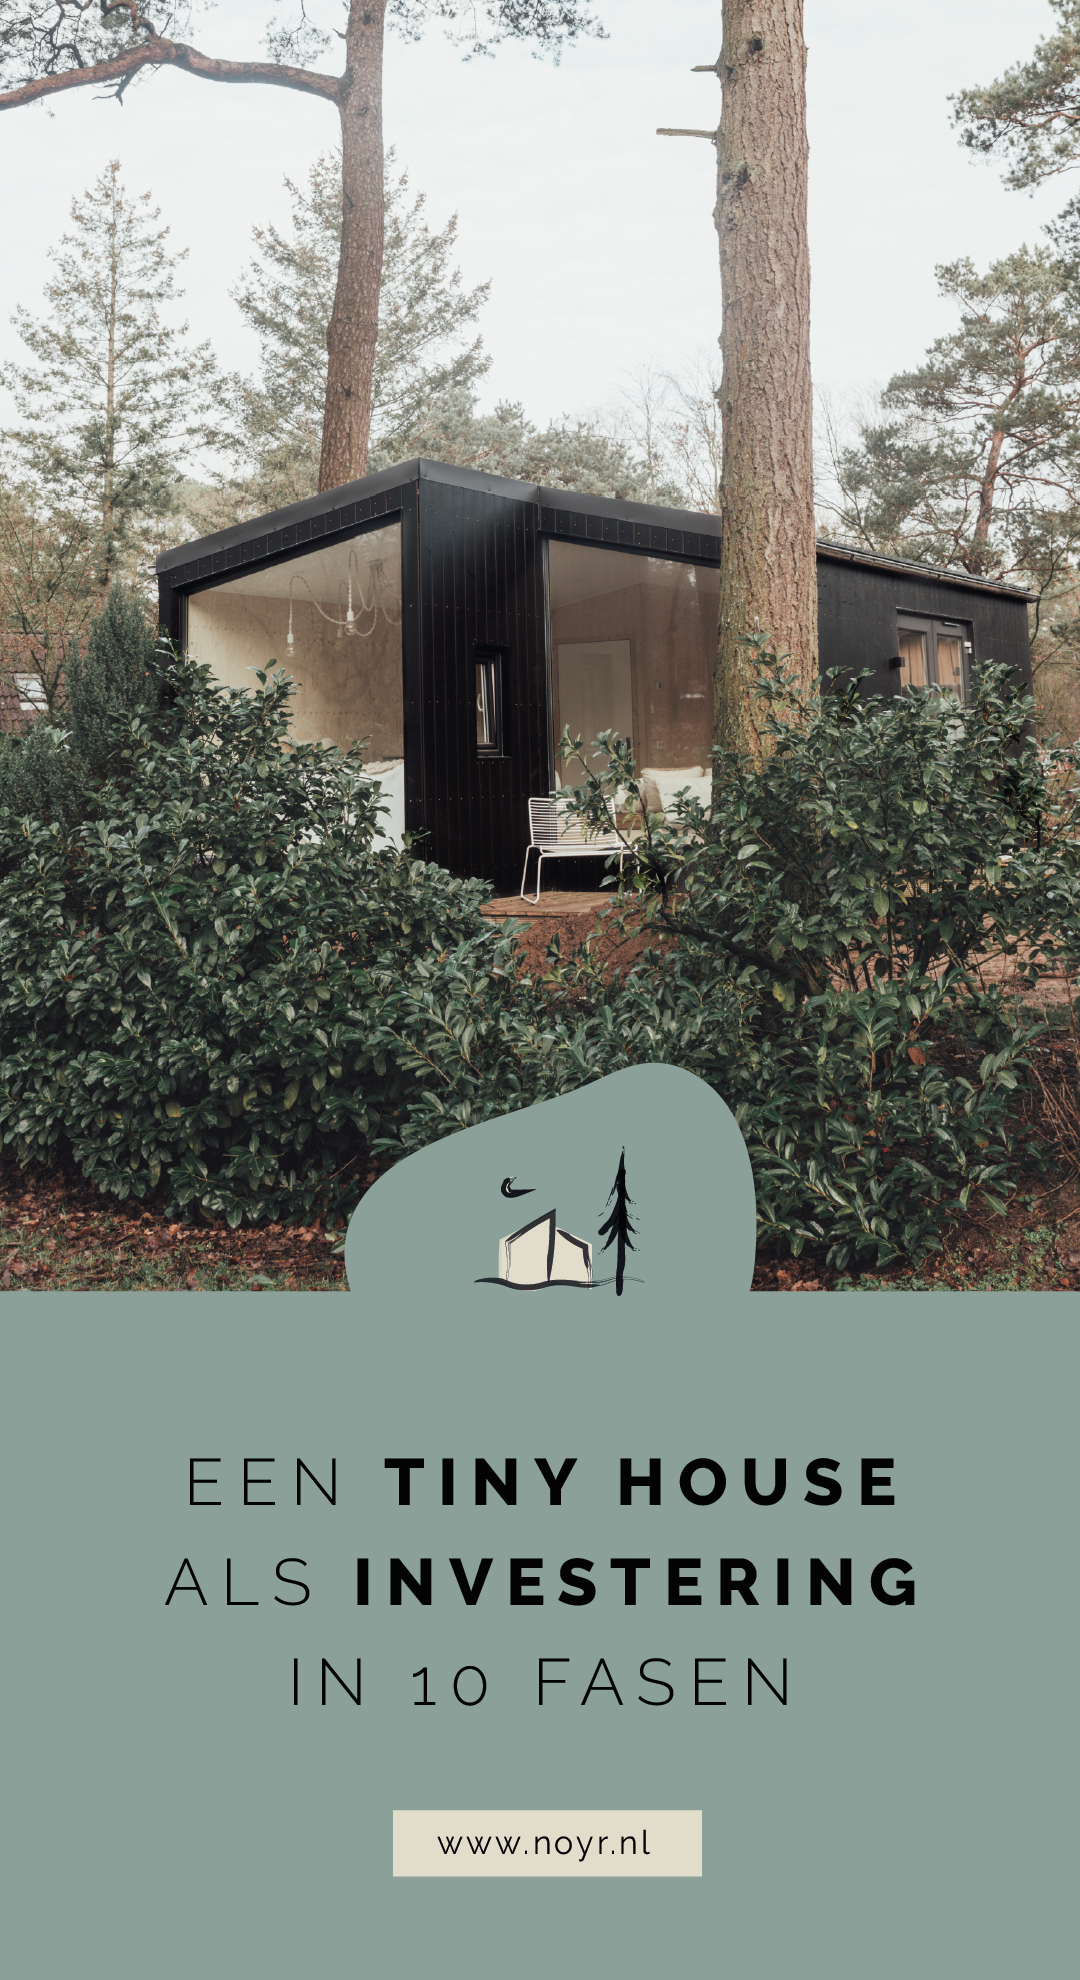 Tiny house als investering | Tiny house belegging | Tiny house vakantiewoning | Tiny house kavel | Veluwe | Zelf een tiny house bouwen